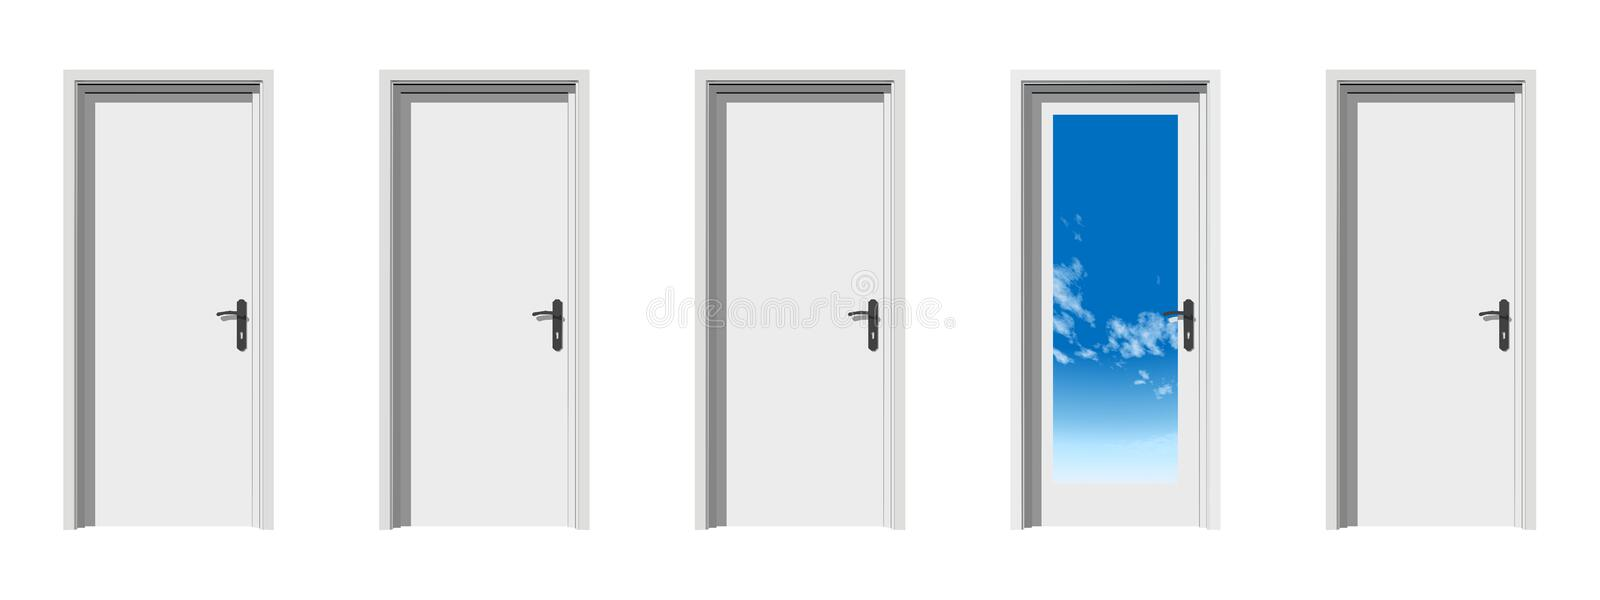 Download High Resolution Conceptual 3d Doors In A Row Stock Illustration - Image: 17396592